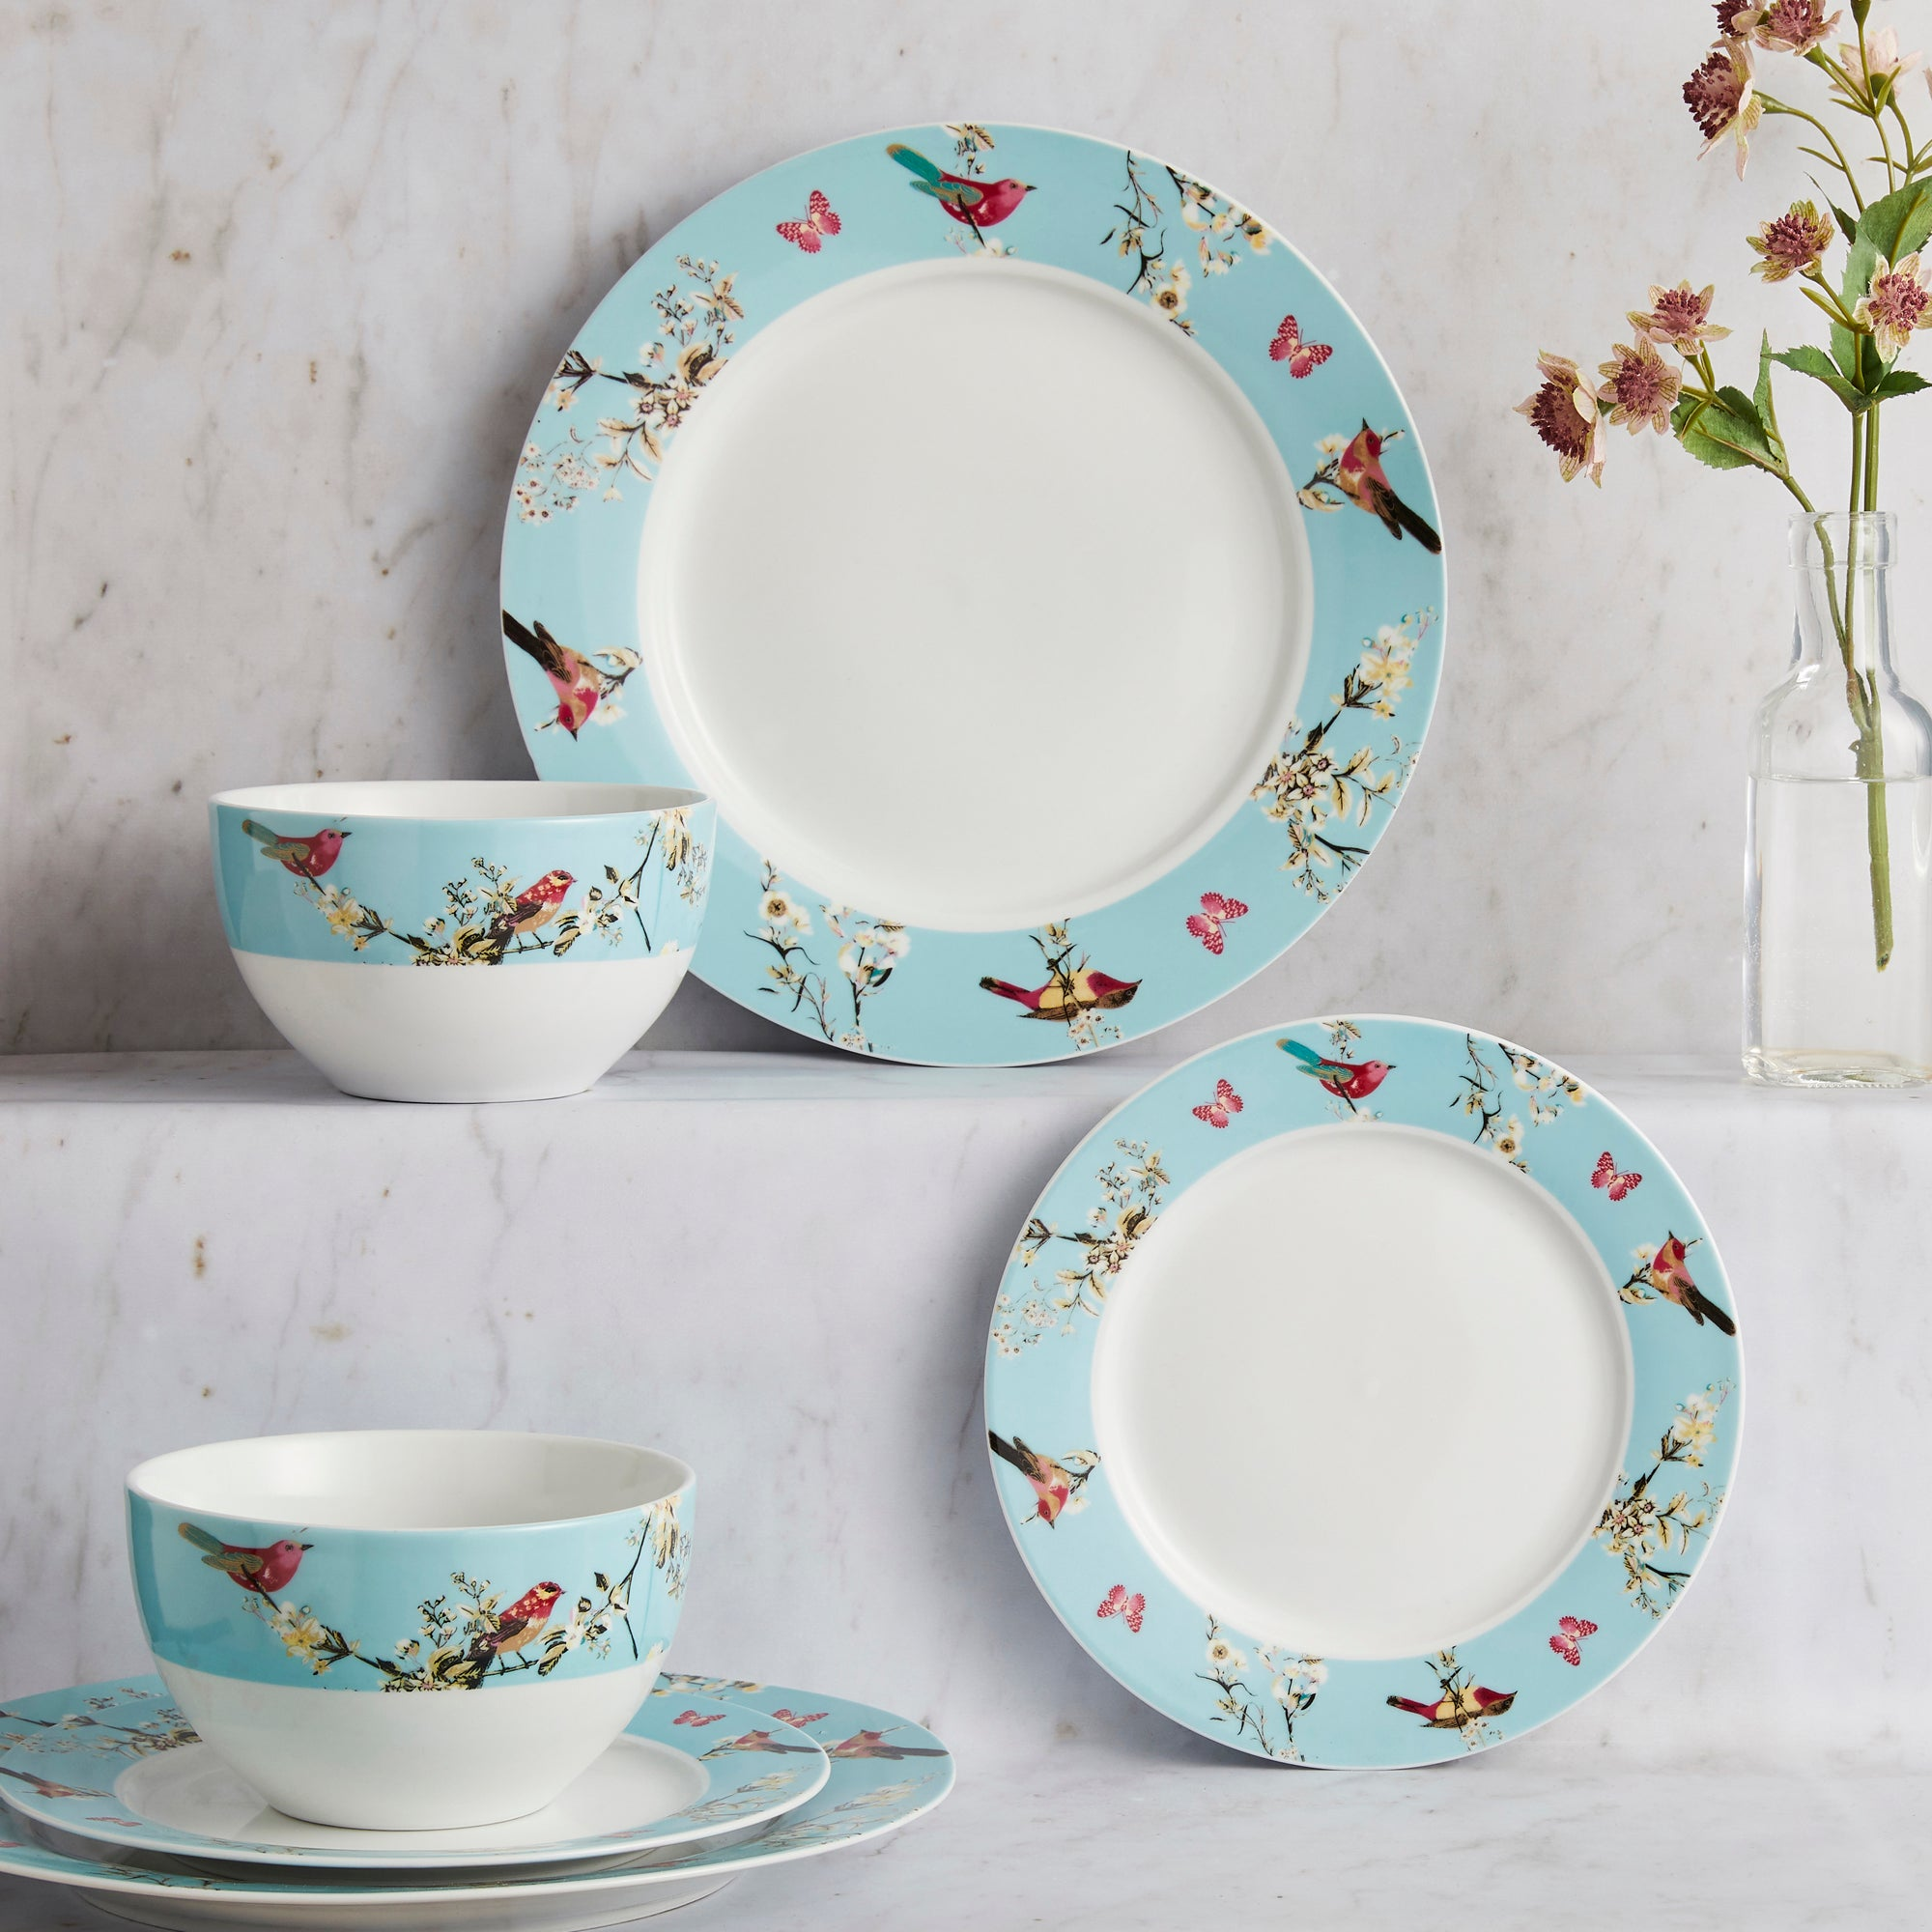 Beautiful Birds 12 Piece Dinner Set Duck Egg Blue